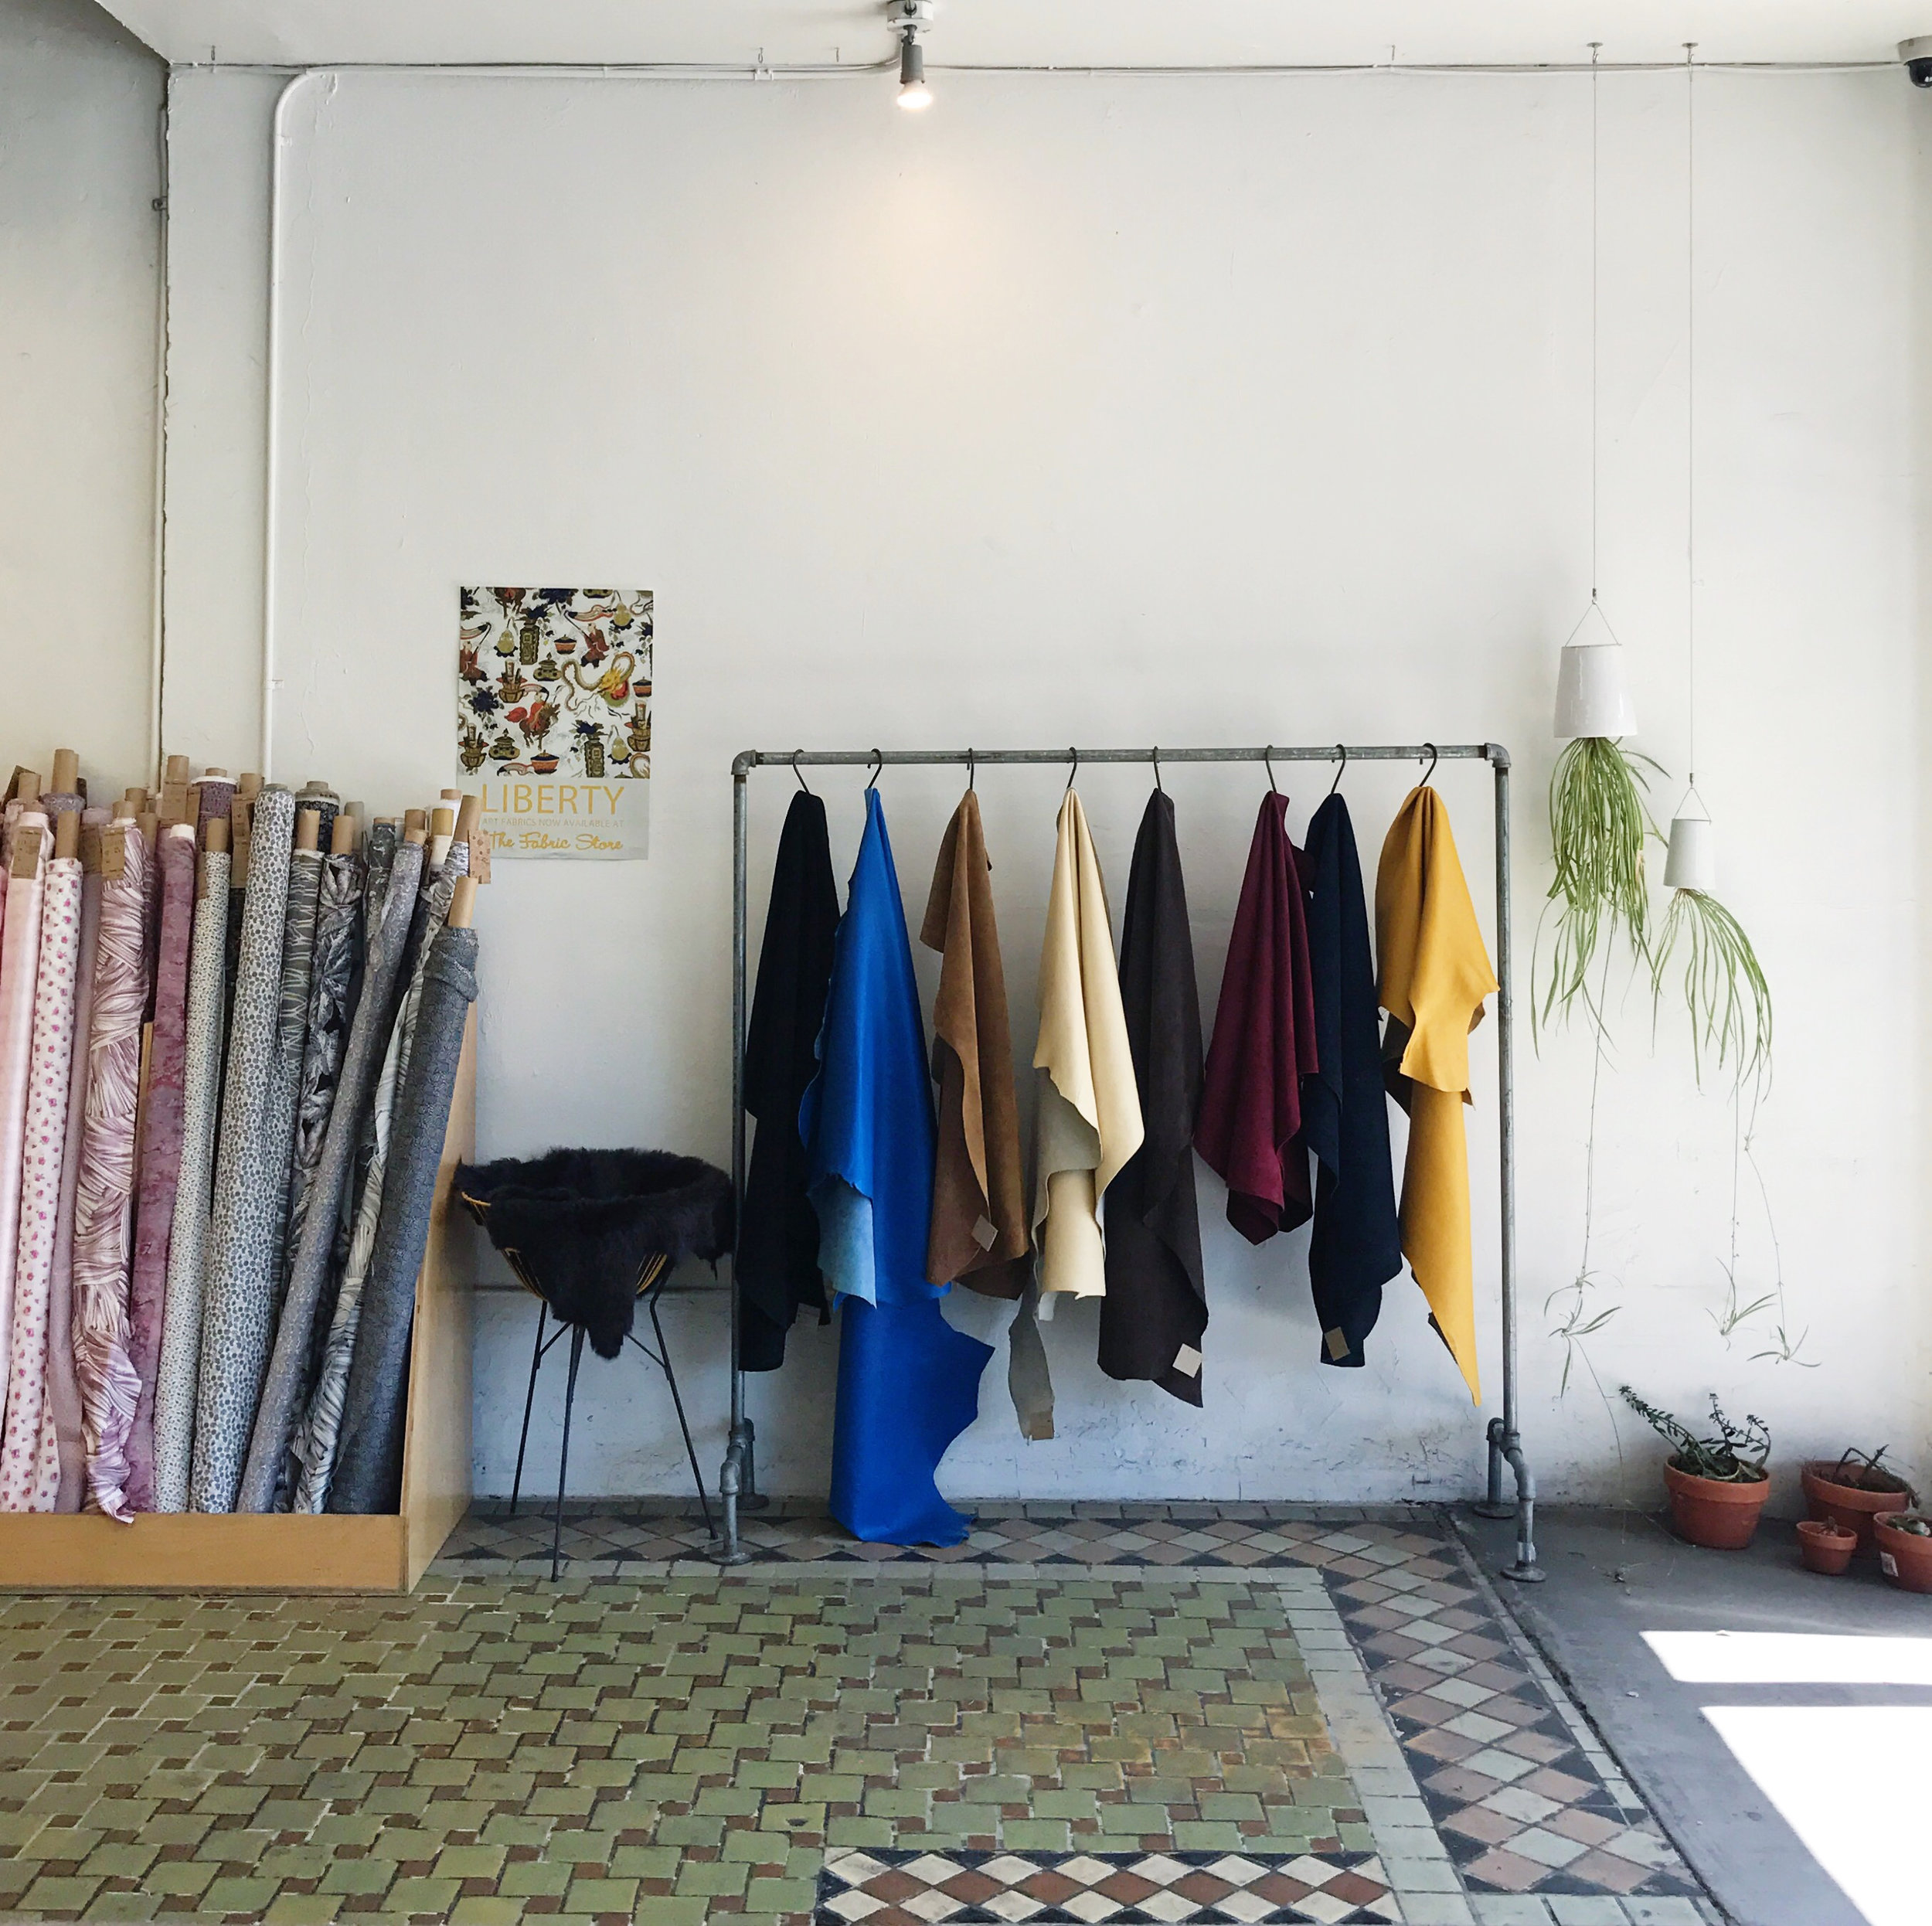 The Fabric Store, Mid-City Los Angeles